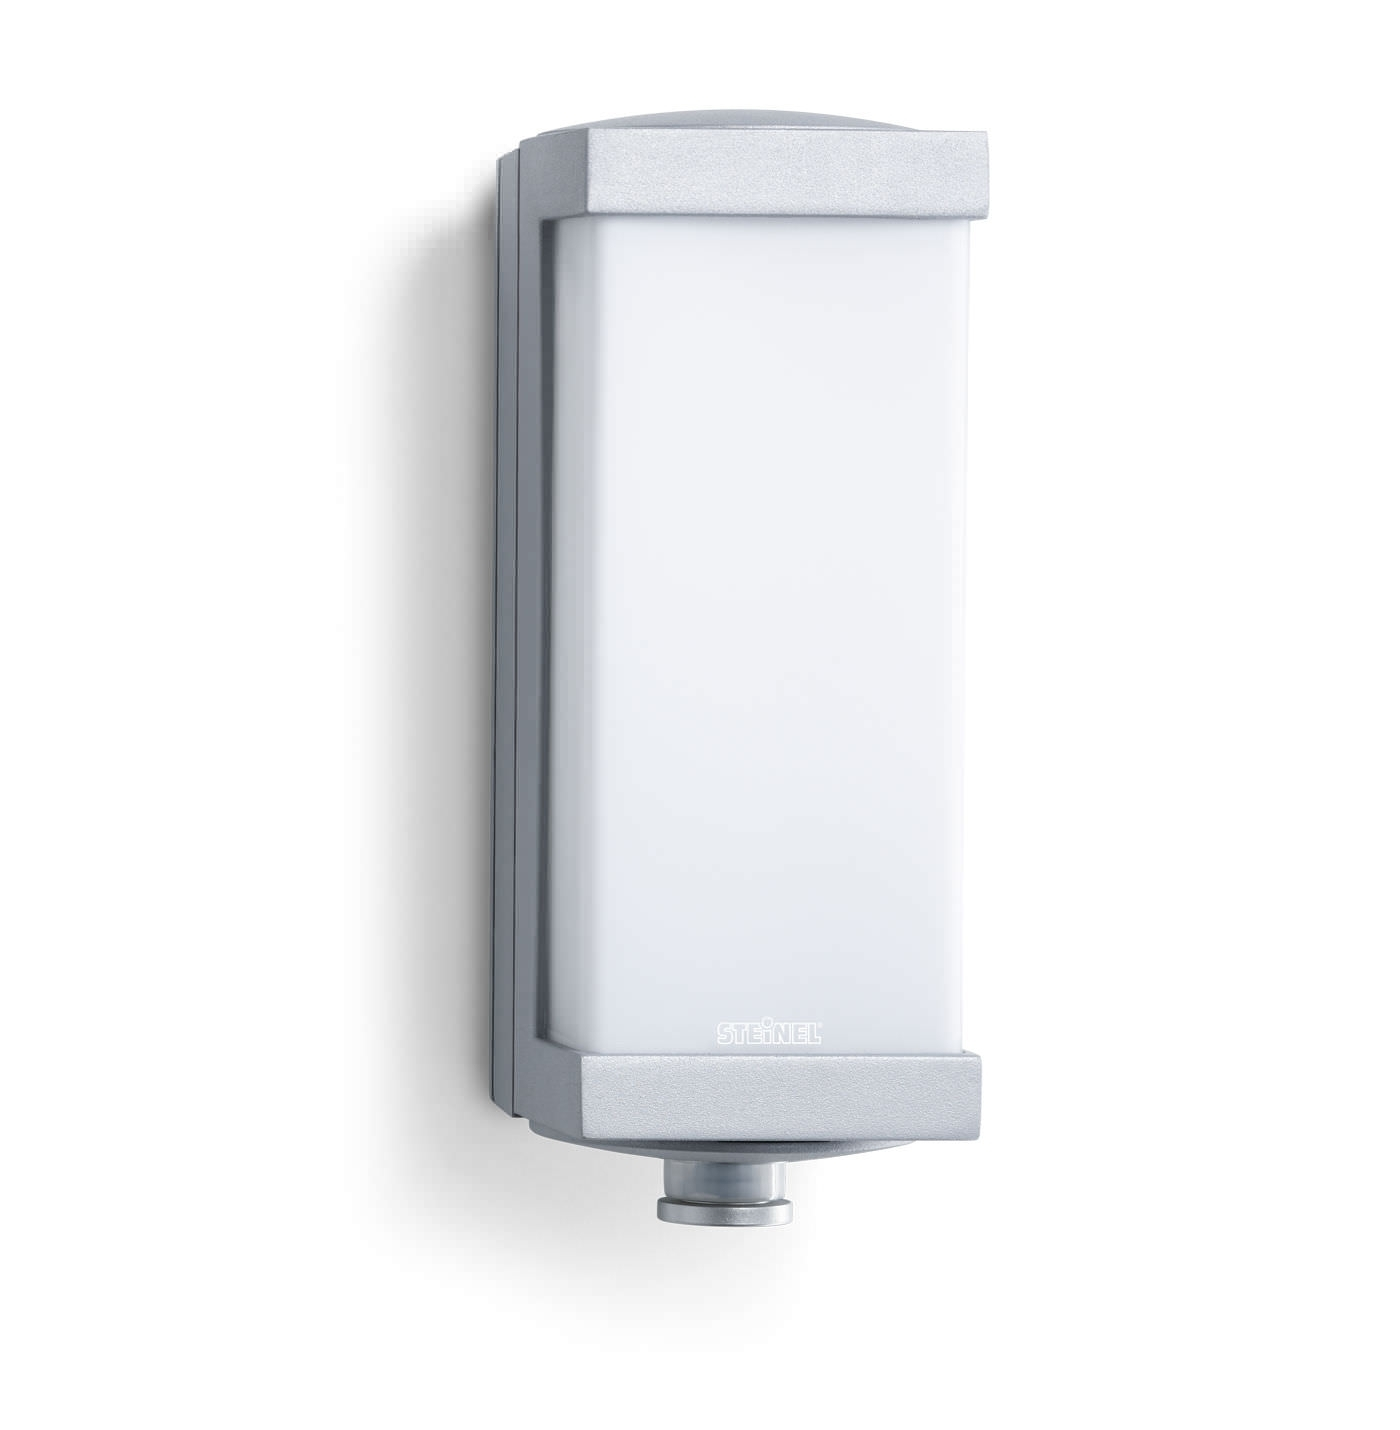 Outdoor Wall Lights With Motion Sensors • Outdoor Lighting With Regard To Led Outdoor Wall Lights Lanea With Motion Sensor (#13 of 15)